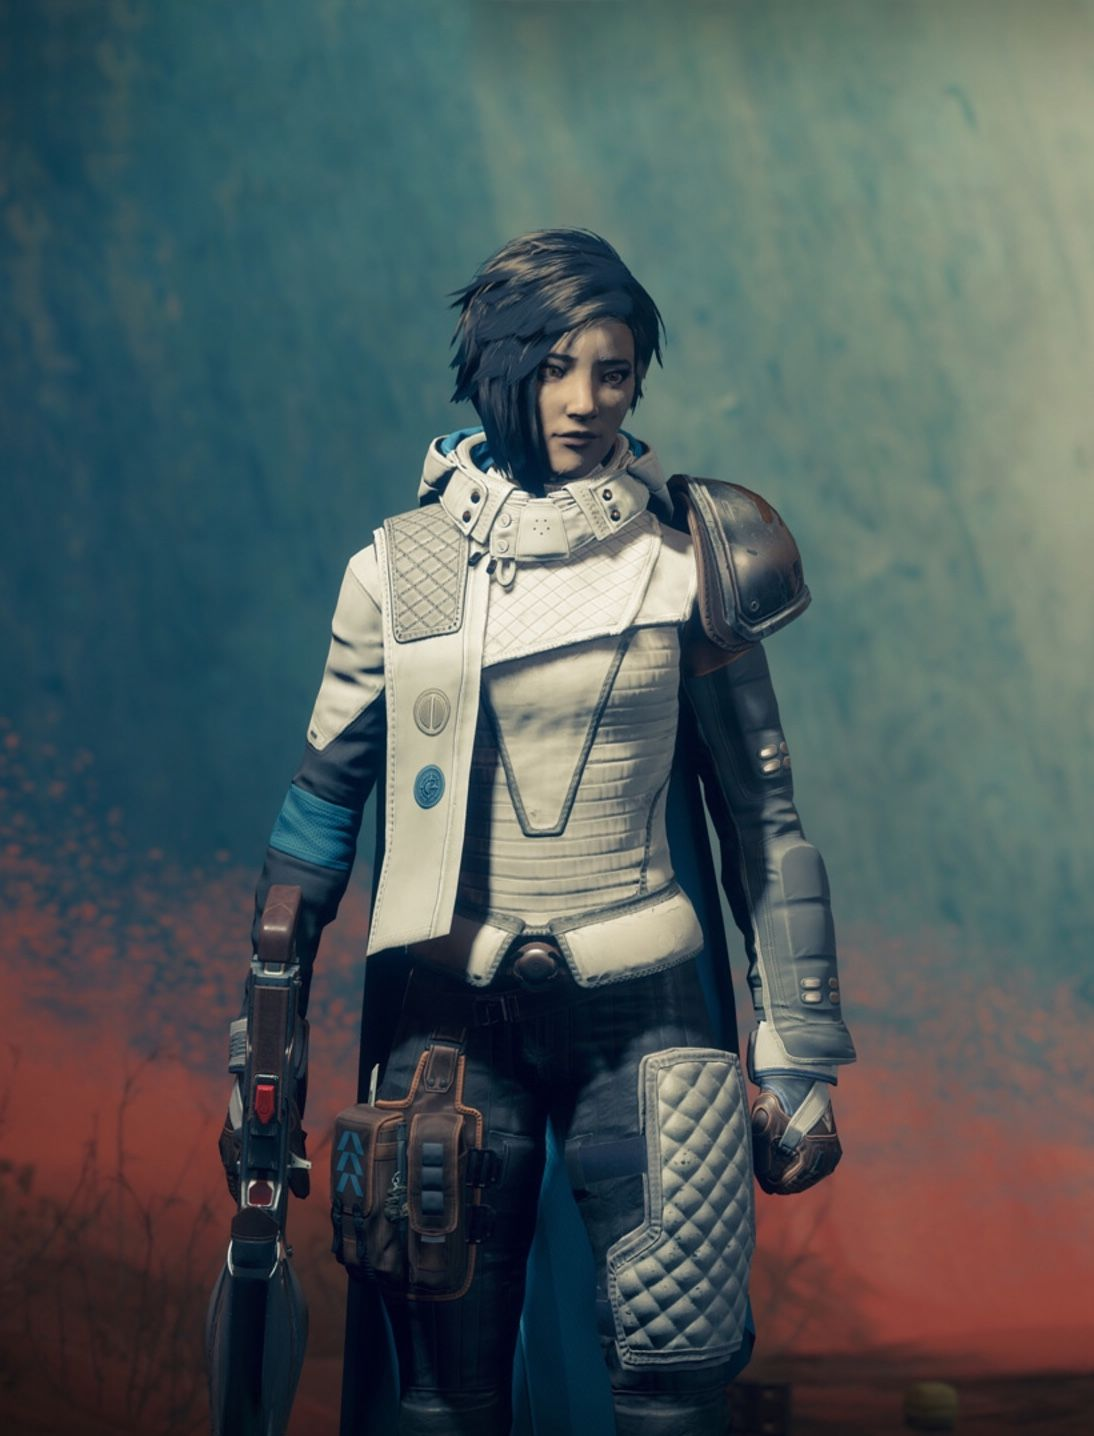 Pin By Elizabeth Cipriano On Destiny Destiny Game Destiny Destiny Comic It may be simplest to say that among the older guardians who once defended the city following the collapse, ana bray. pin by elizabeth cipriano on destiny